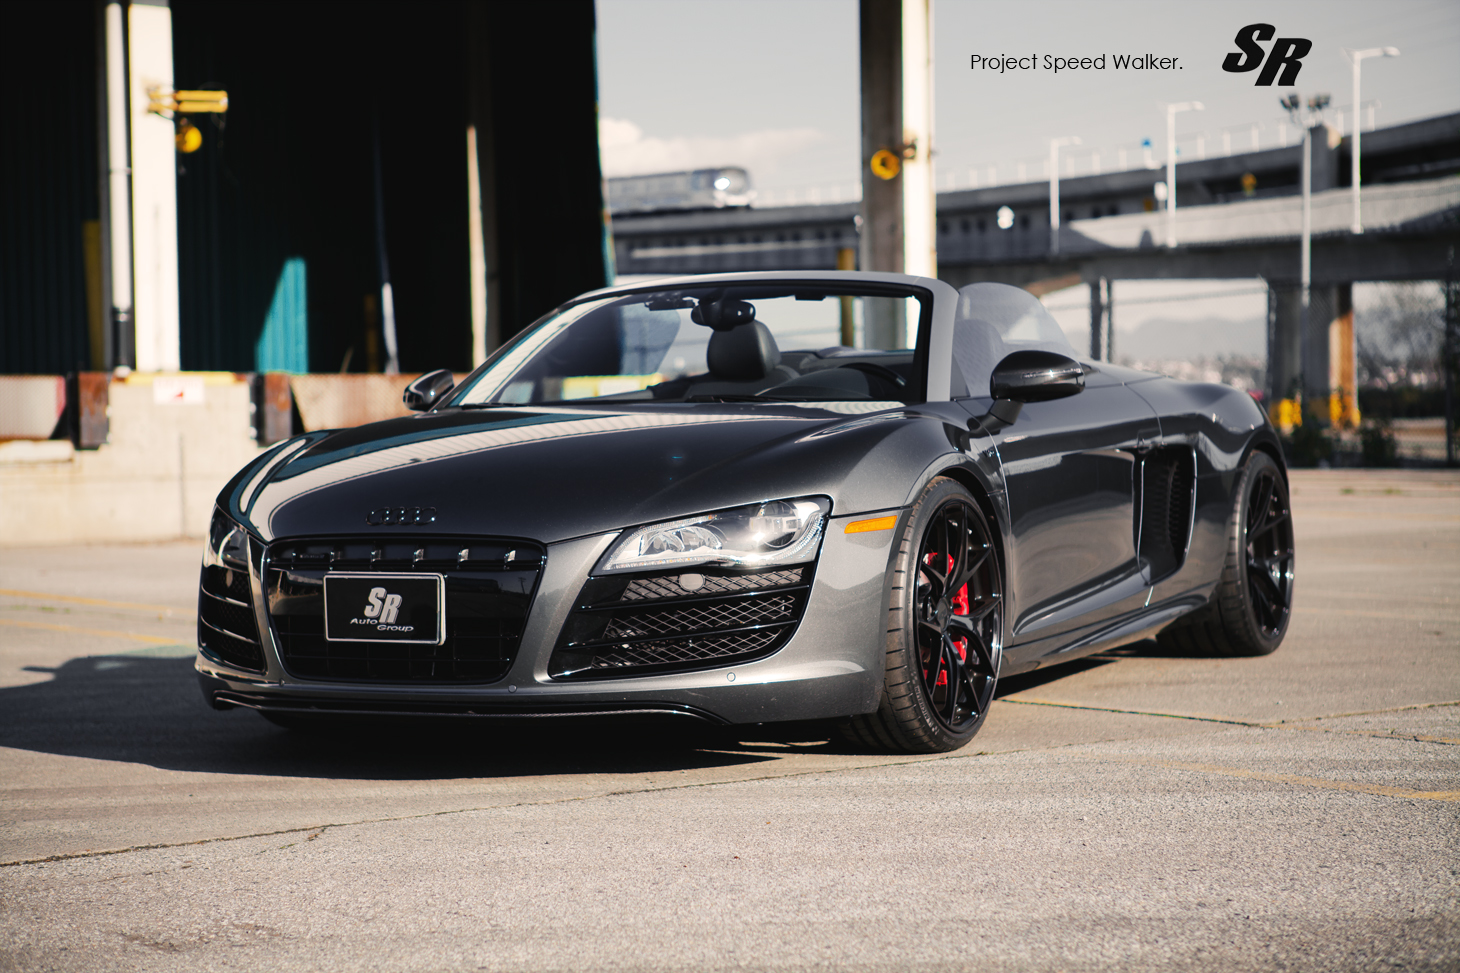 R8 Spyder car - Color: Gray  // Description: performance-inspired powerful superb